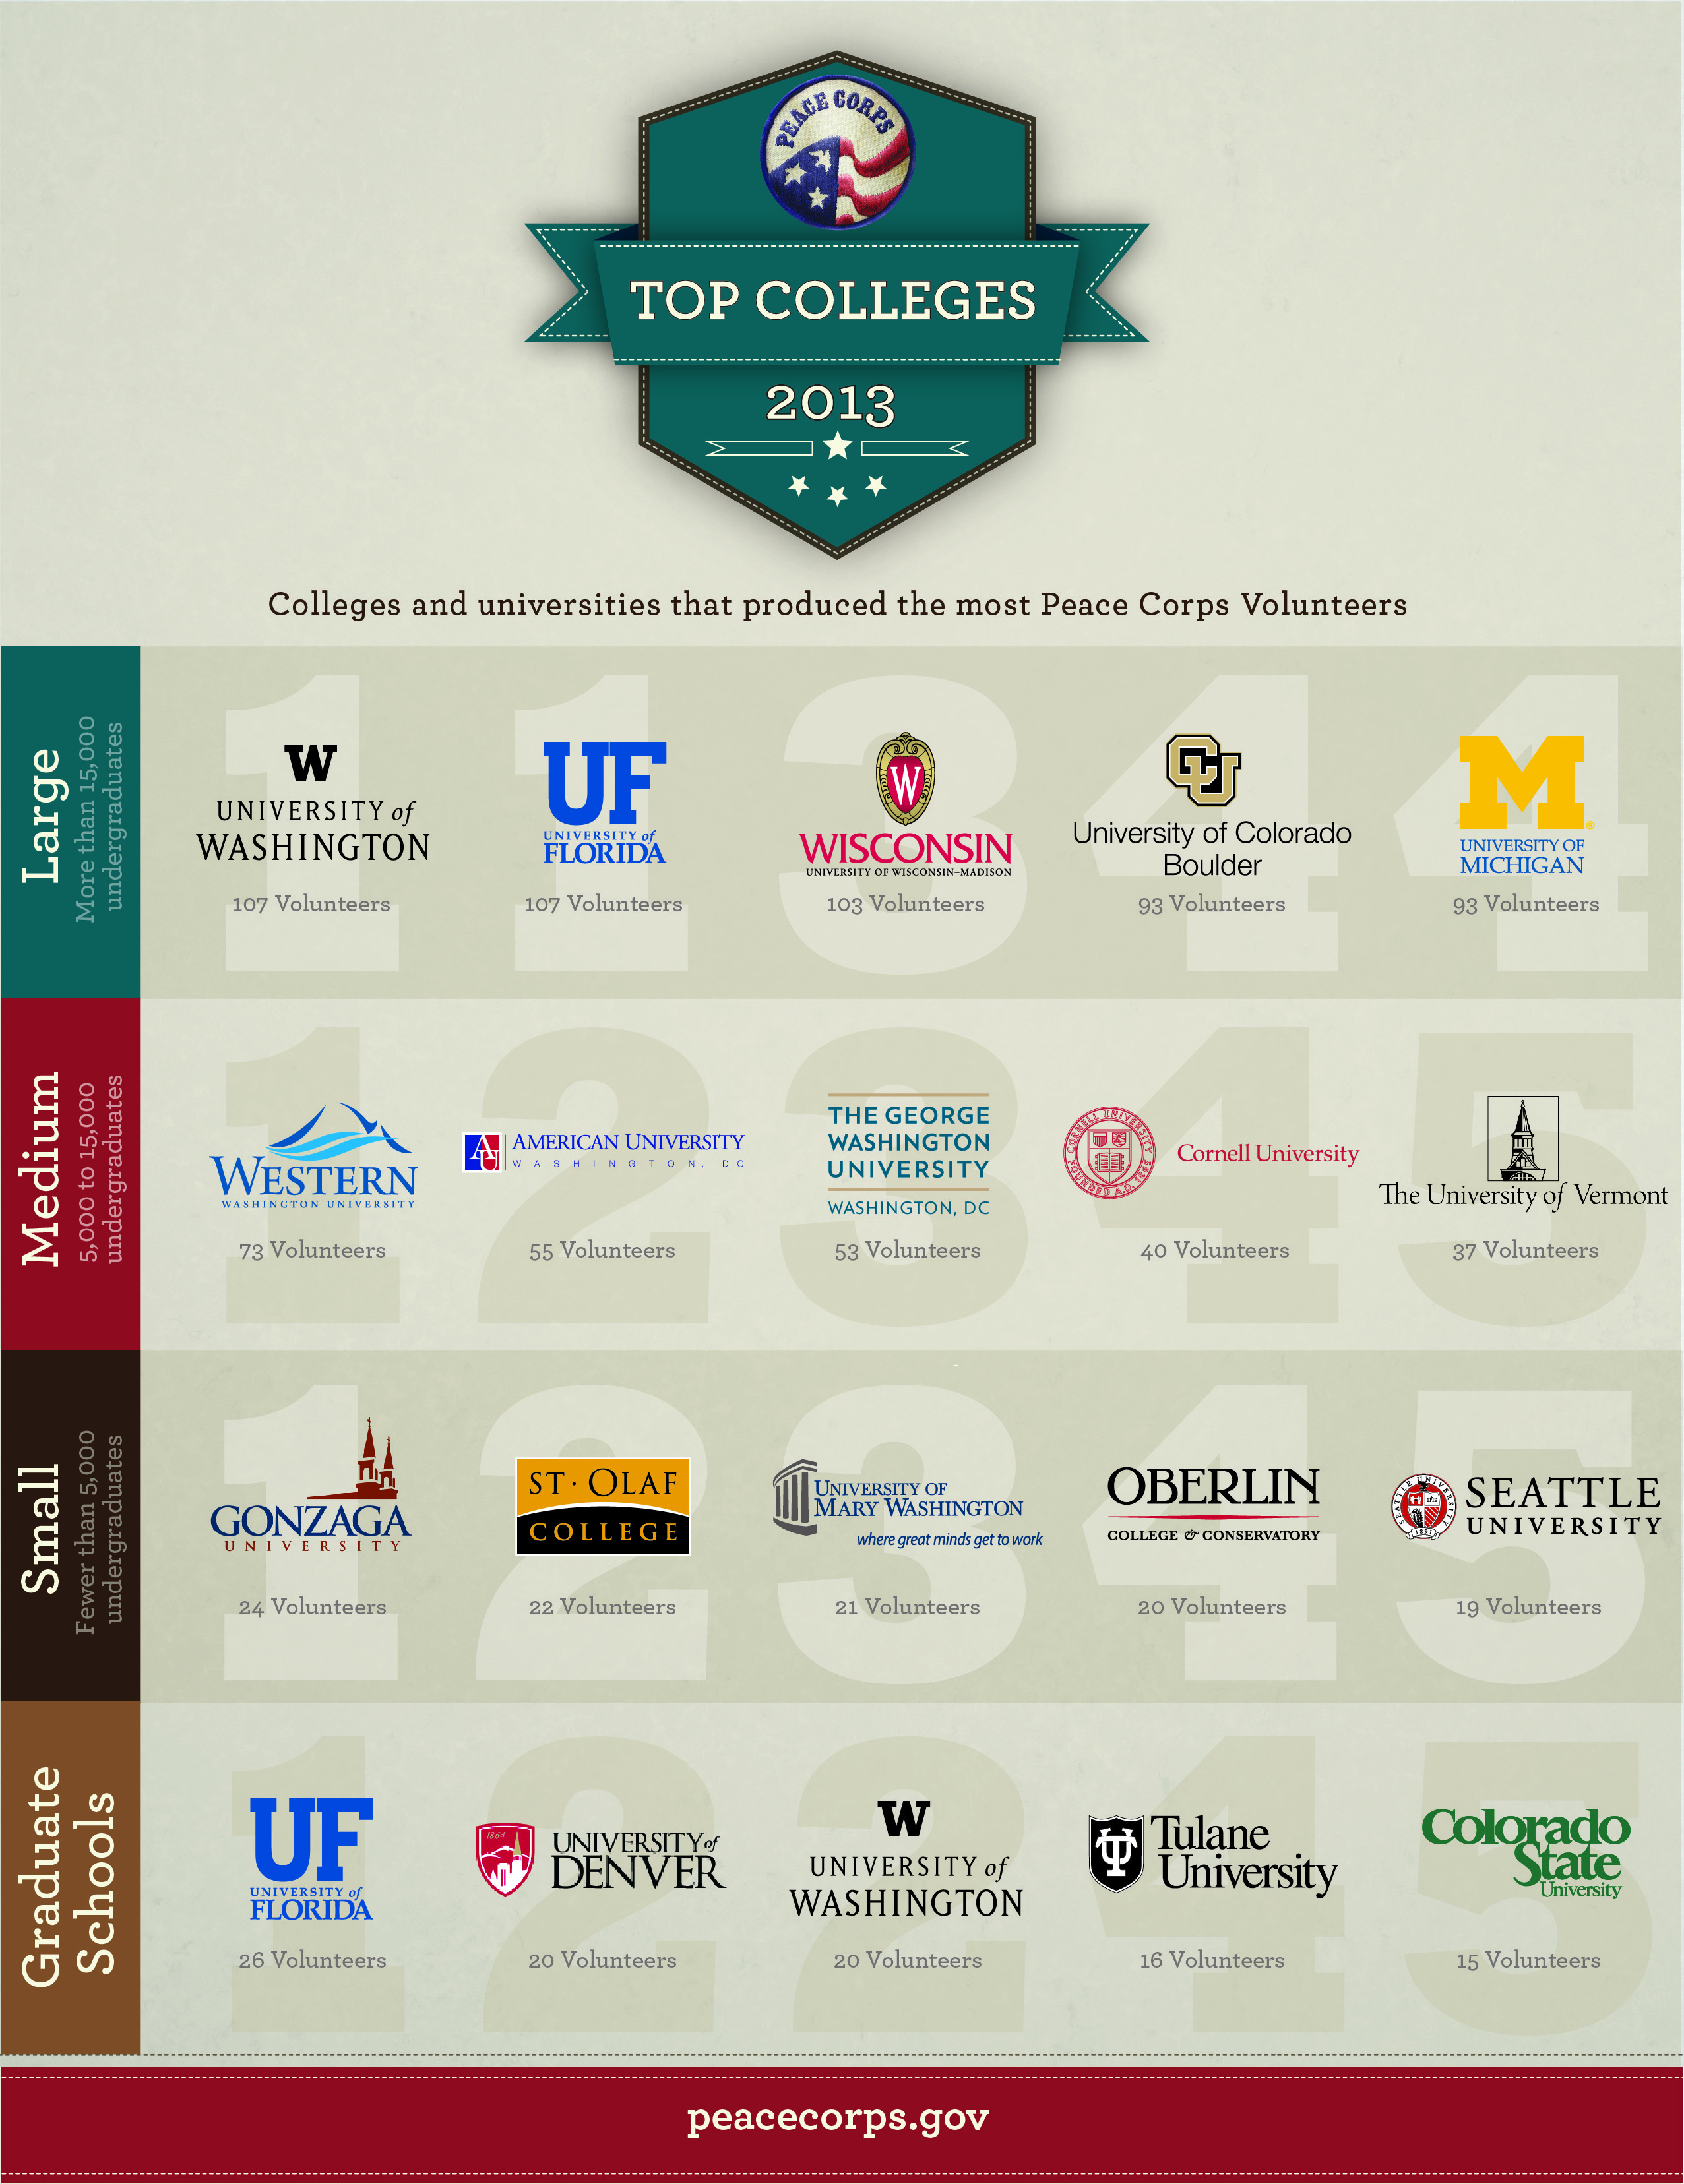 Peace Corps Annual Top Colleges Rankings infographic via peacecorps.gov